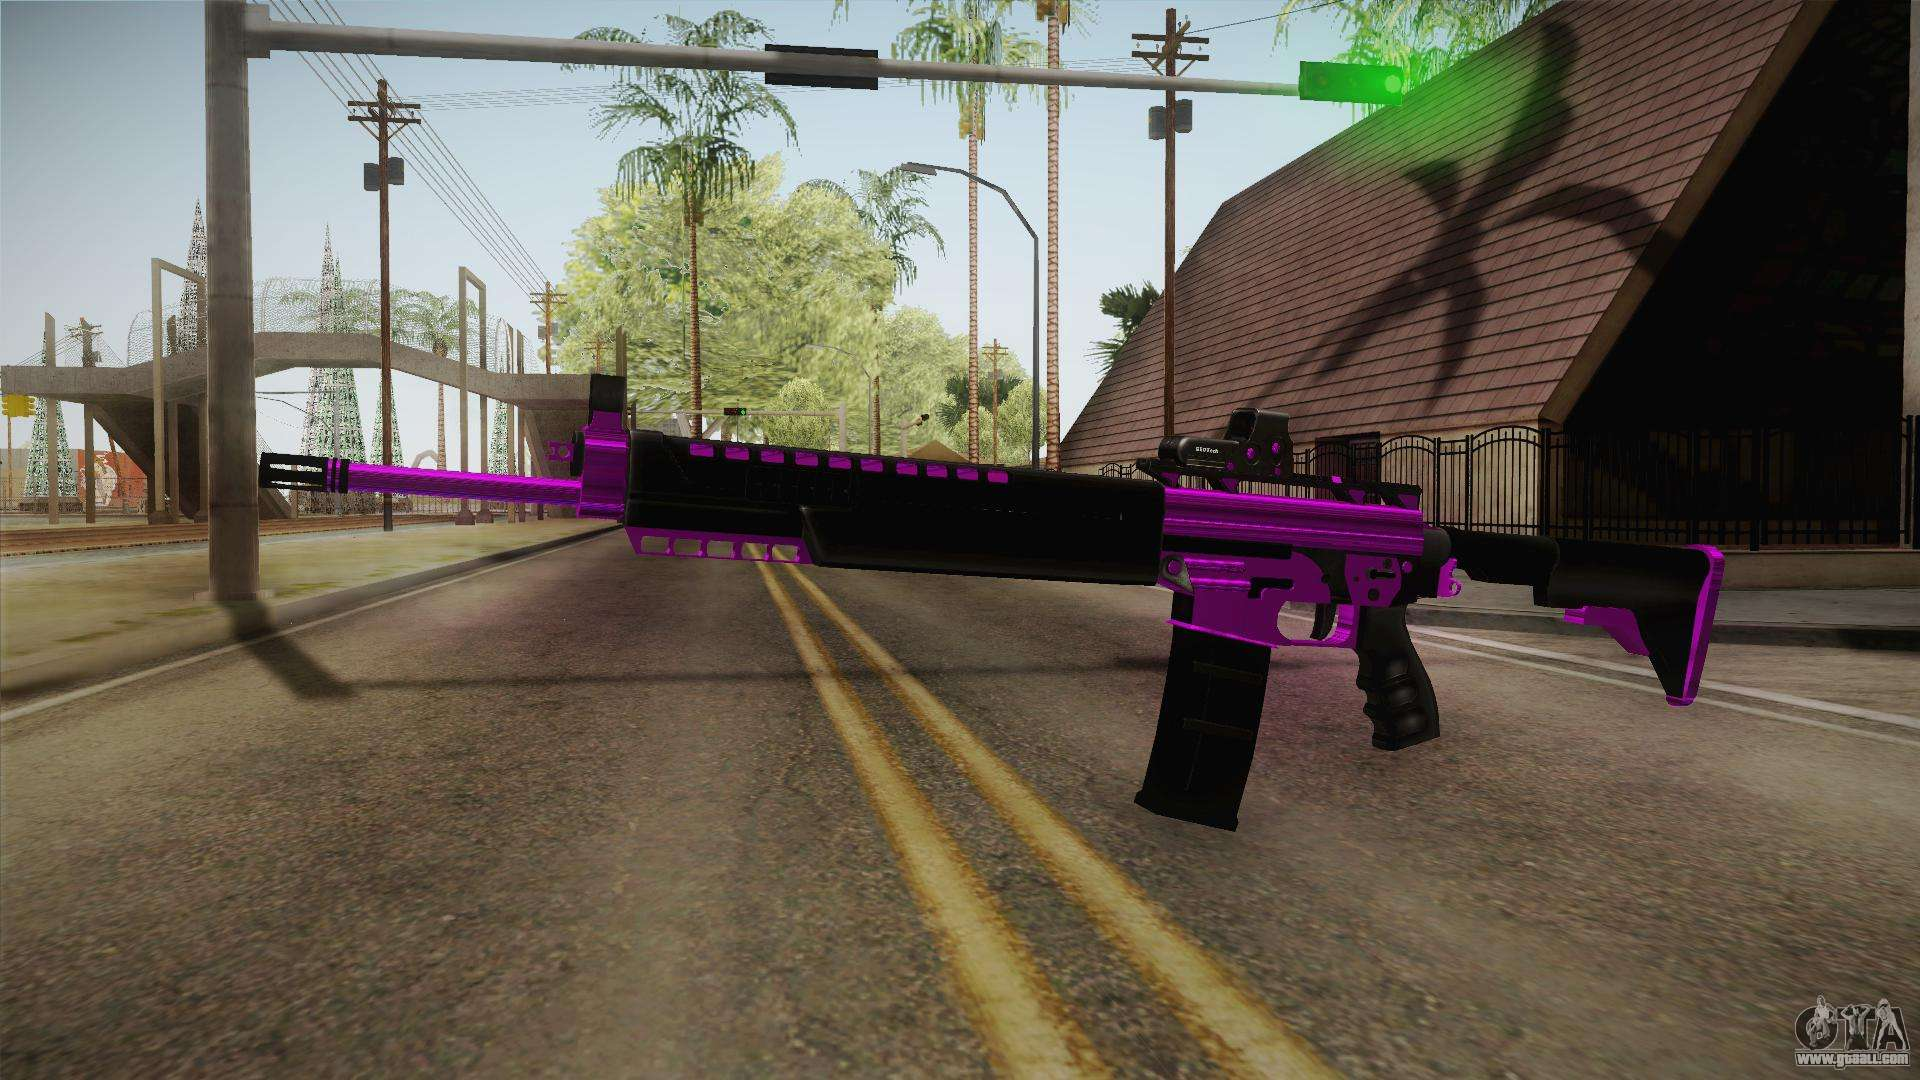 San andreas mod installer free download